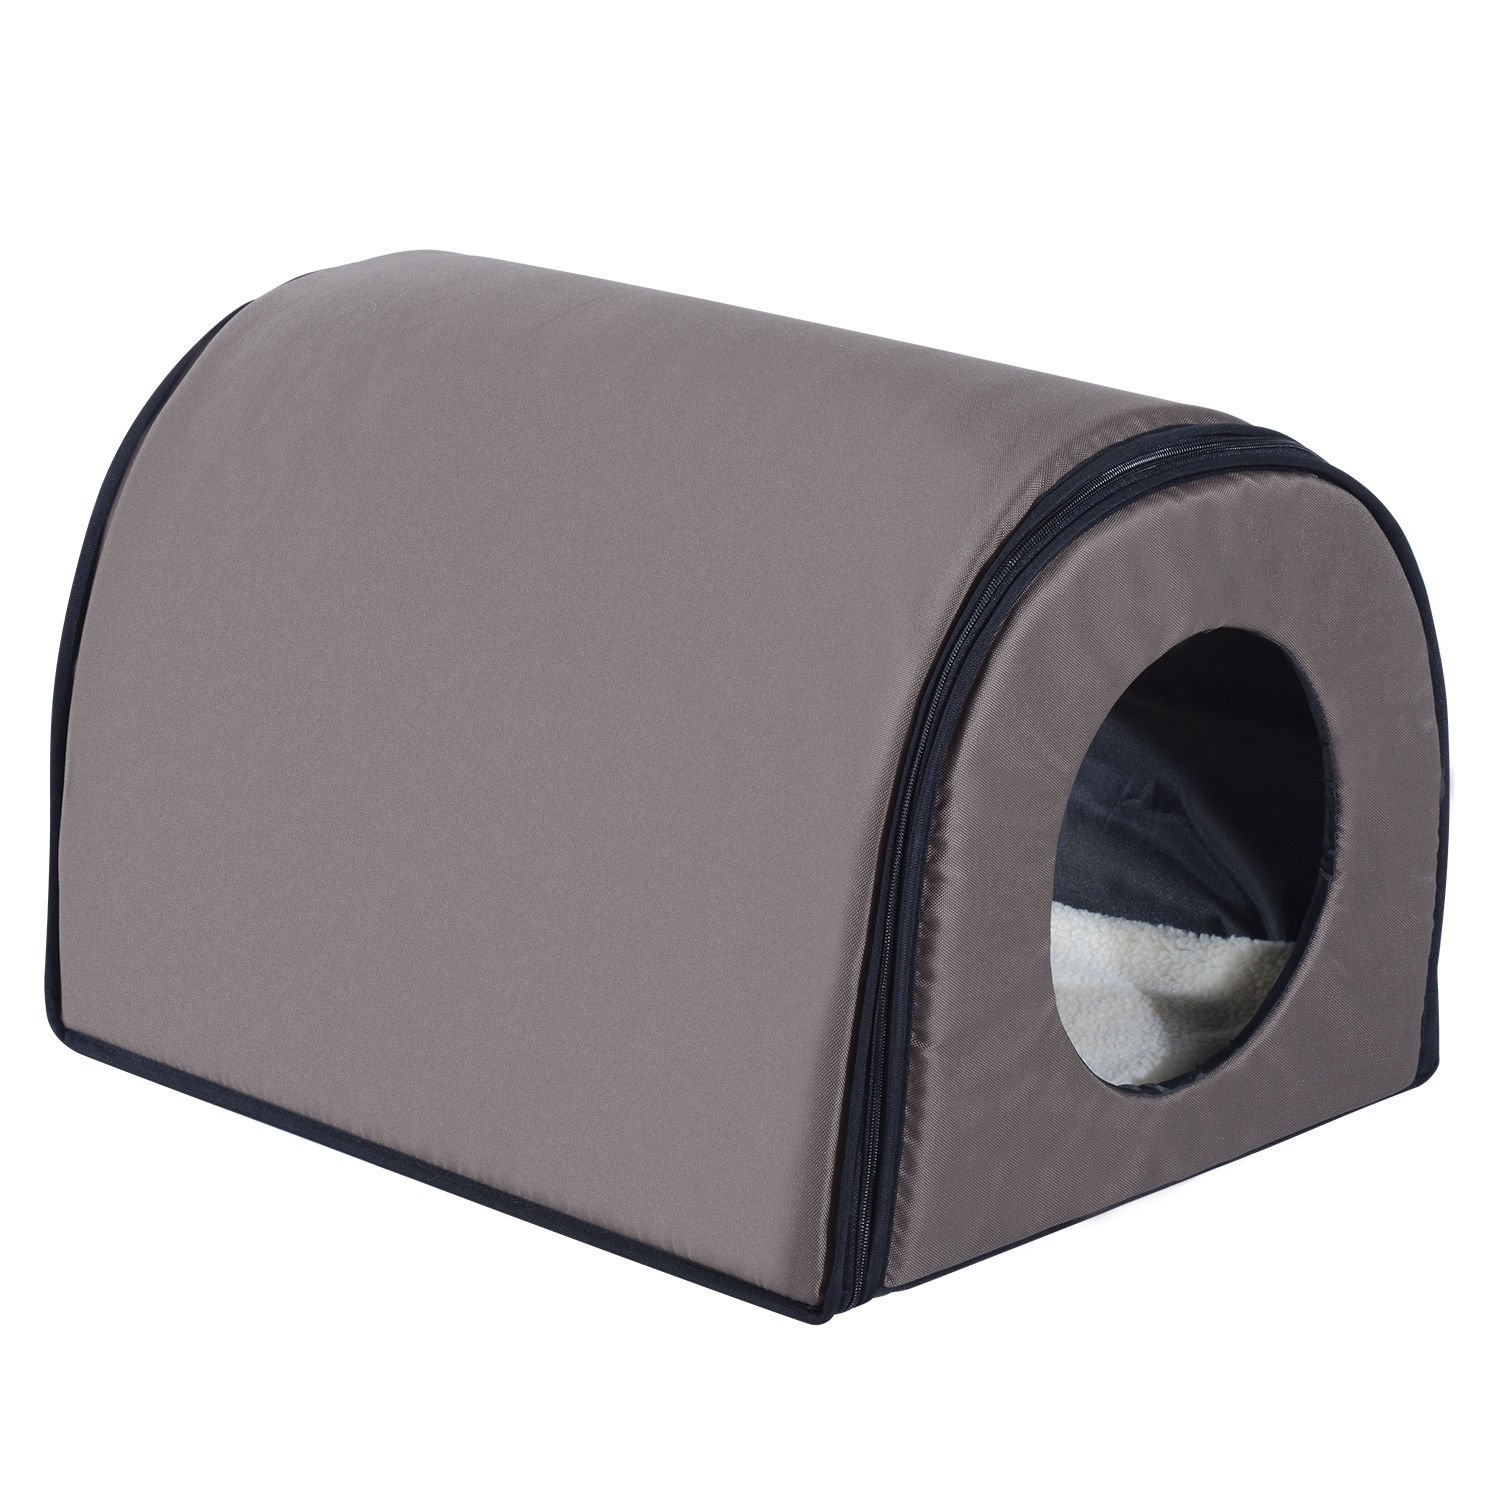 Pawhut Heated Outdoor Cat Shelter - Brown (Single, Brown) by PawHut